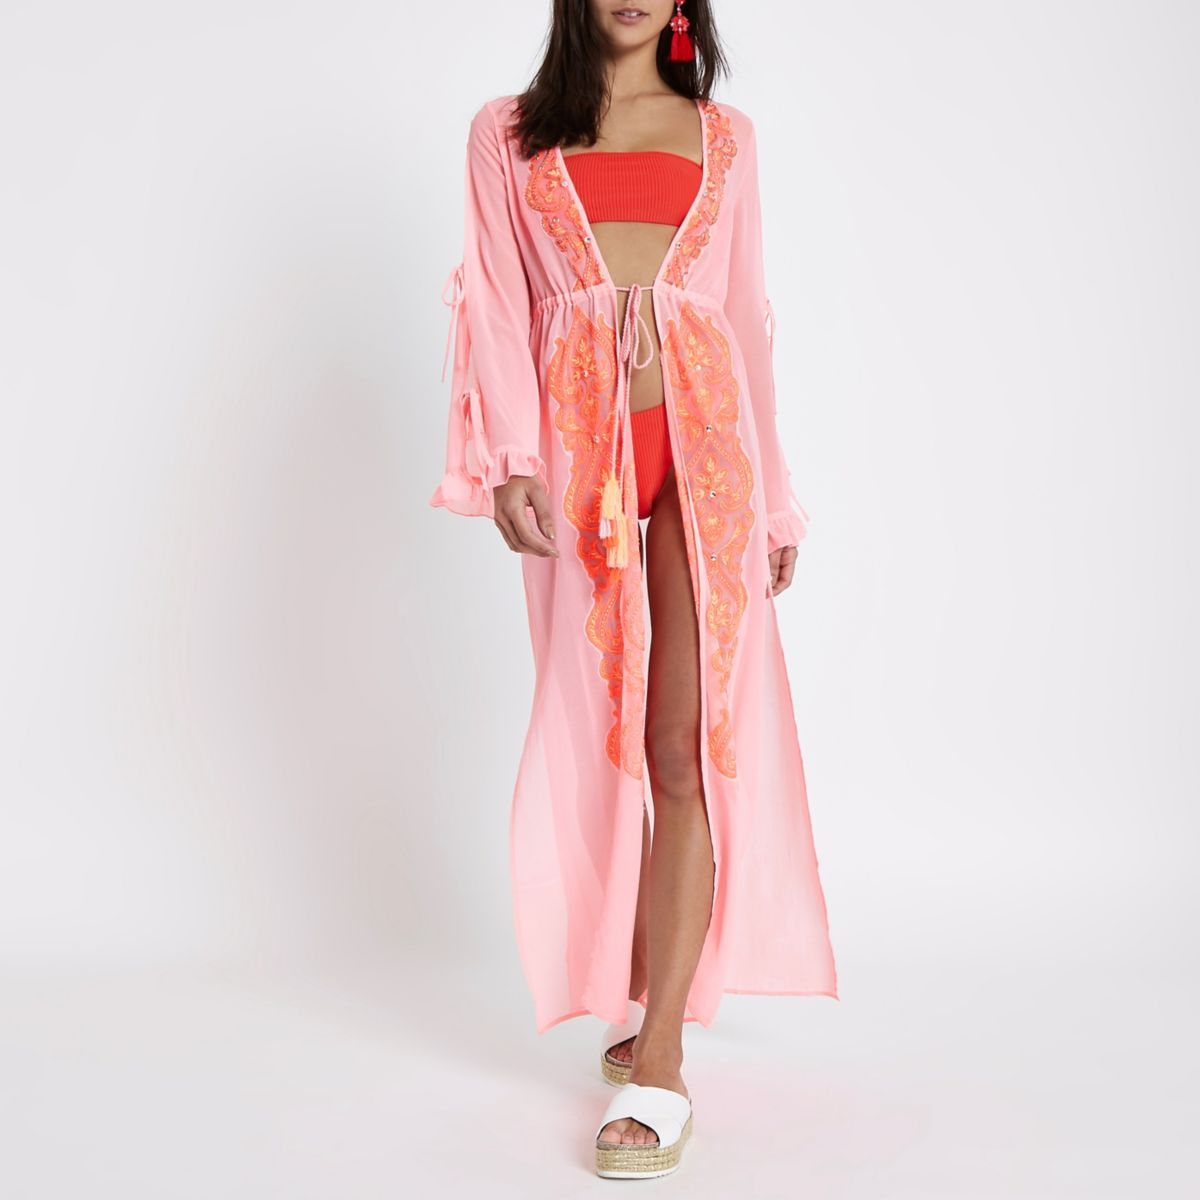 Bright pink embroidered maxi beach cover up